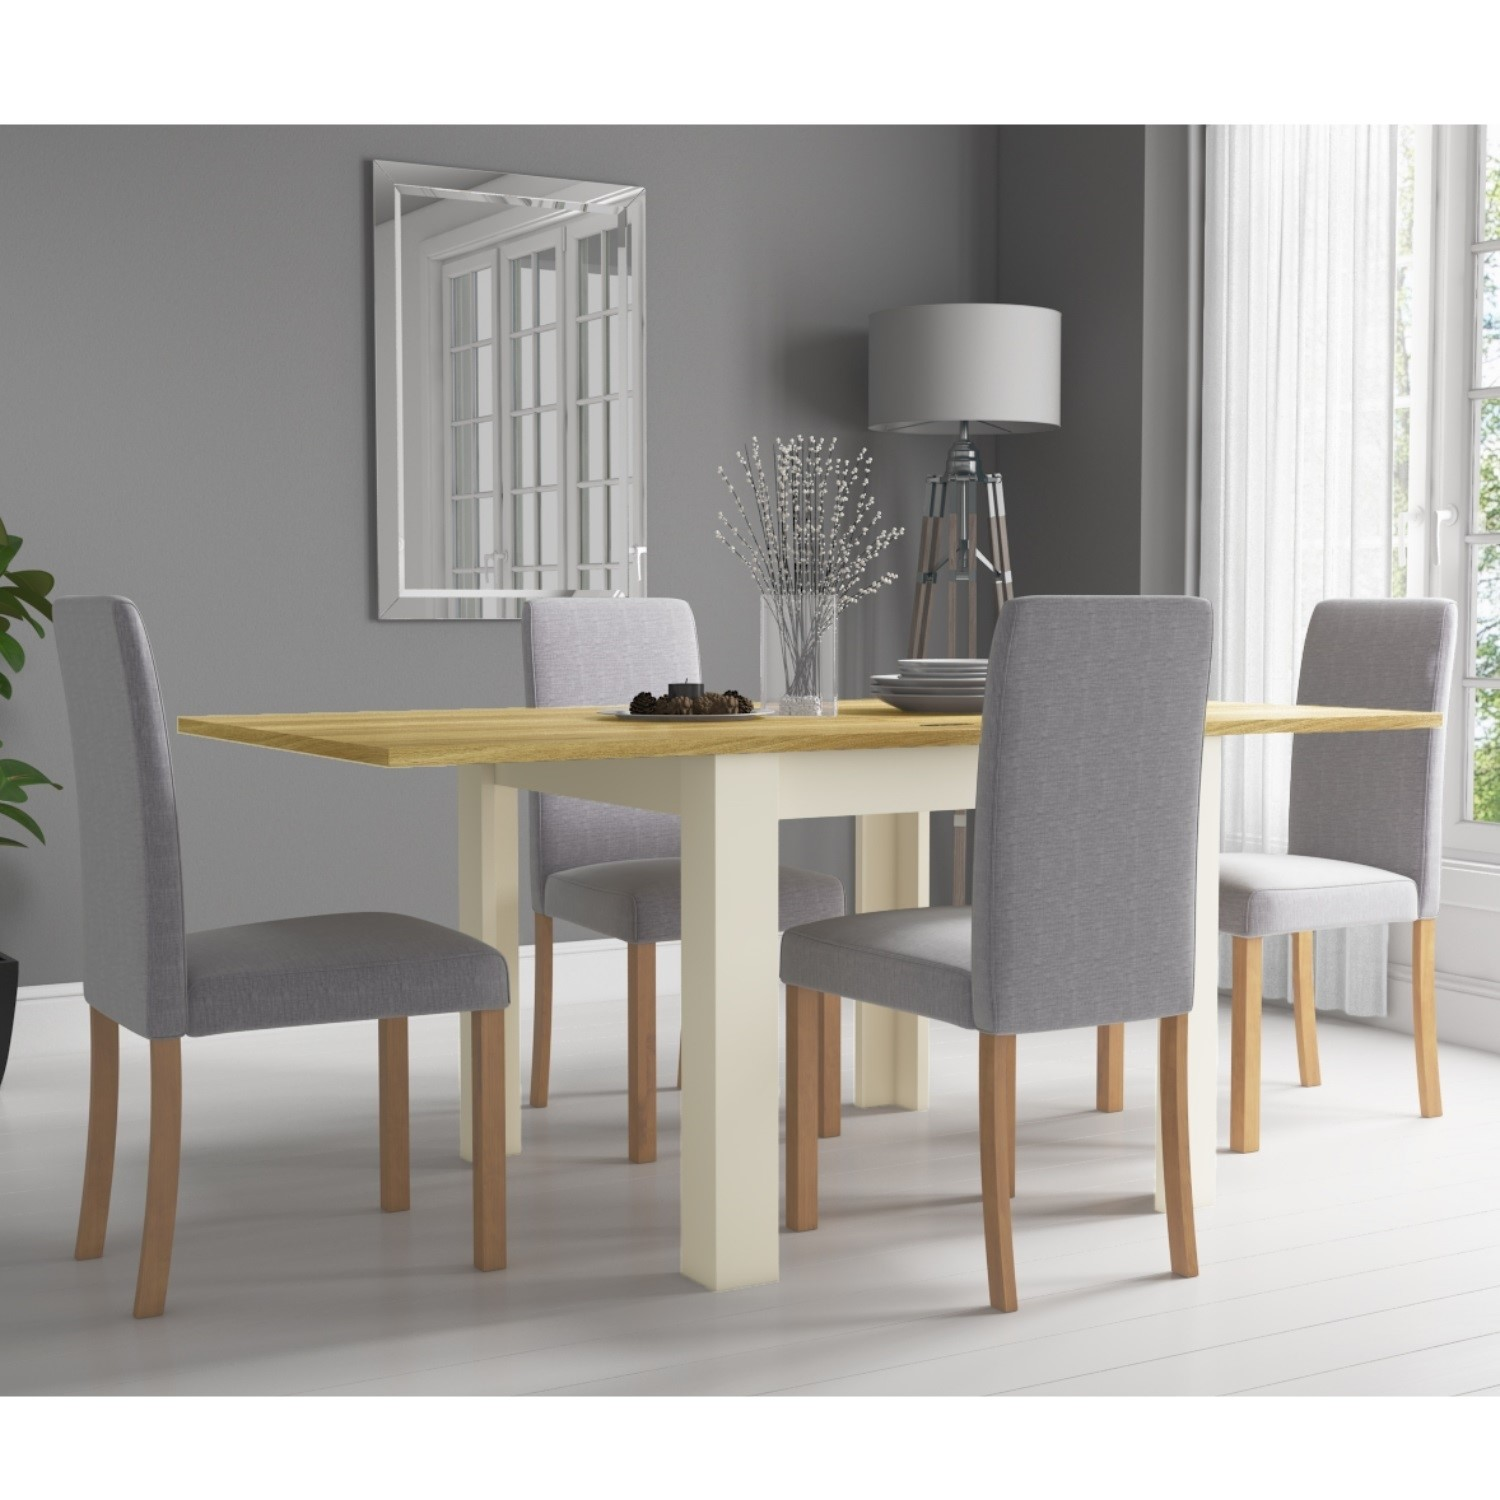 Picture of: Cream Flip Top Dining Table With Oak Top 4 Grey Chairs New Town Furniture123